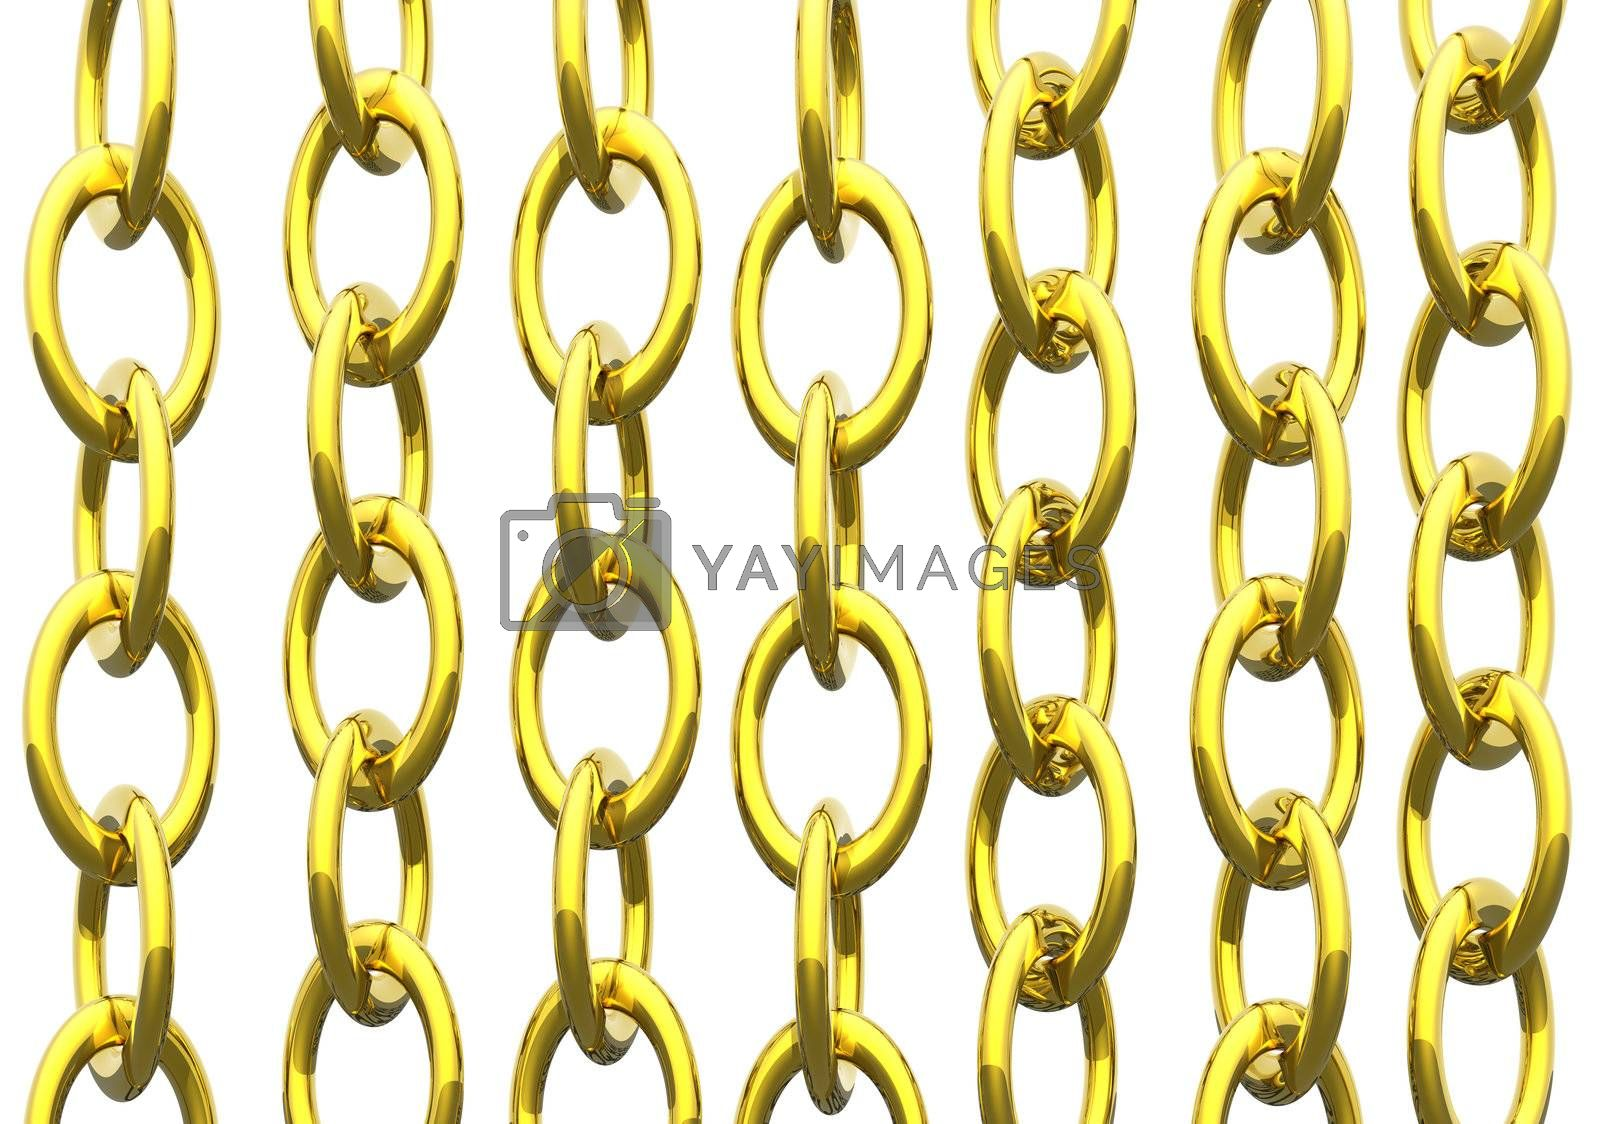 gold chains on white background